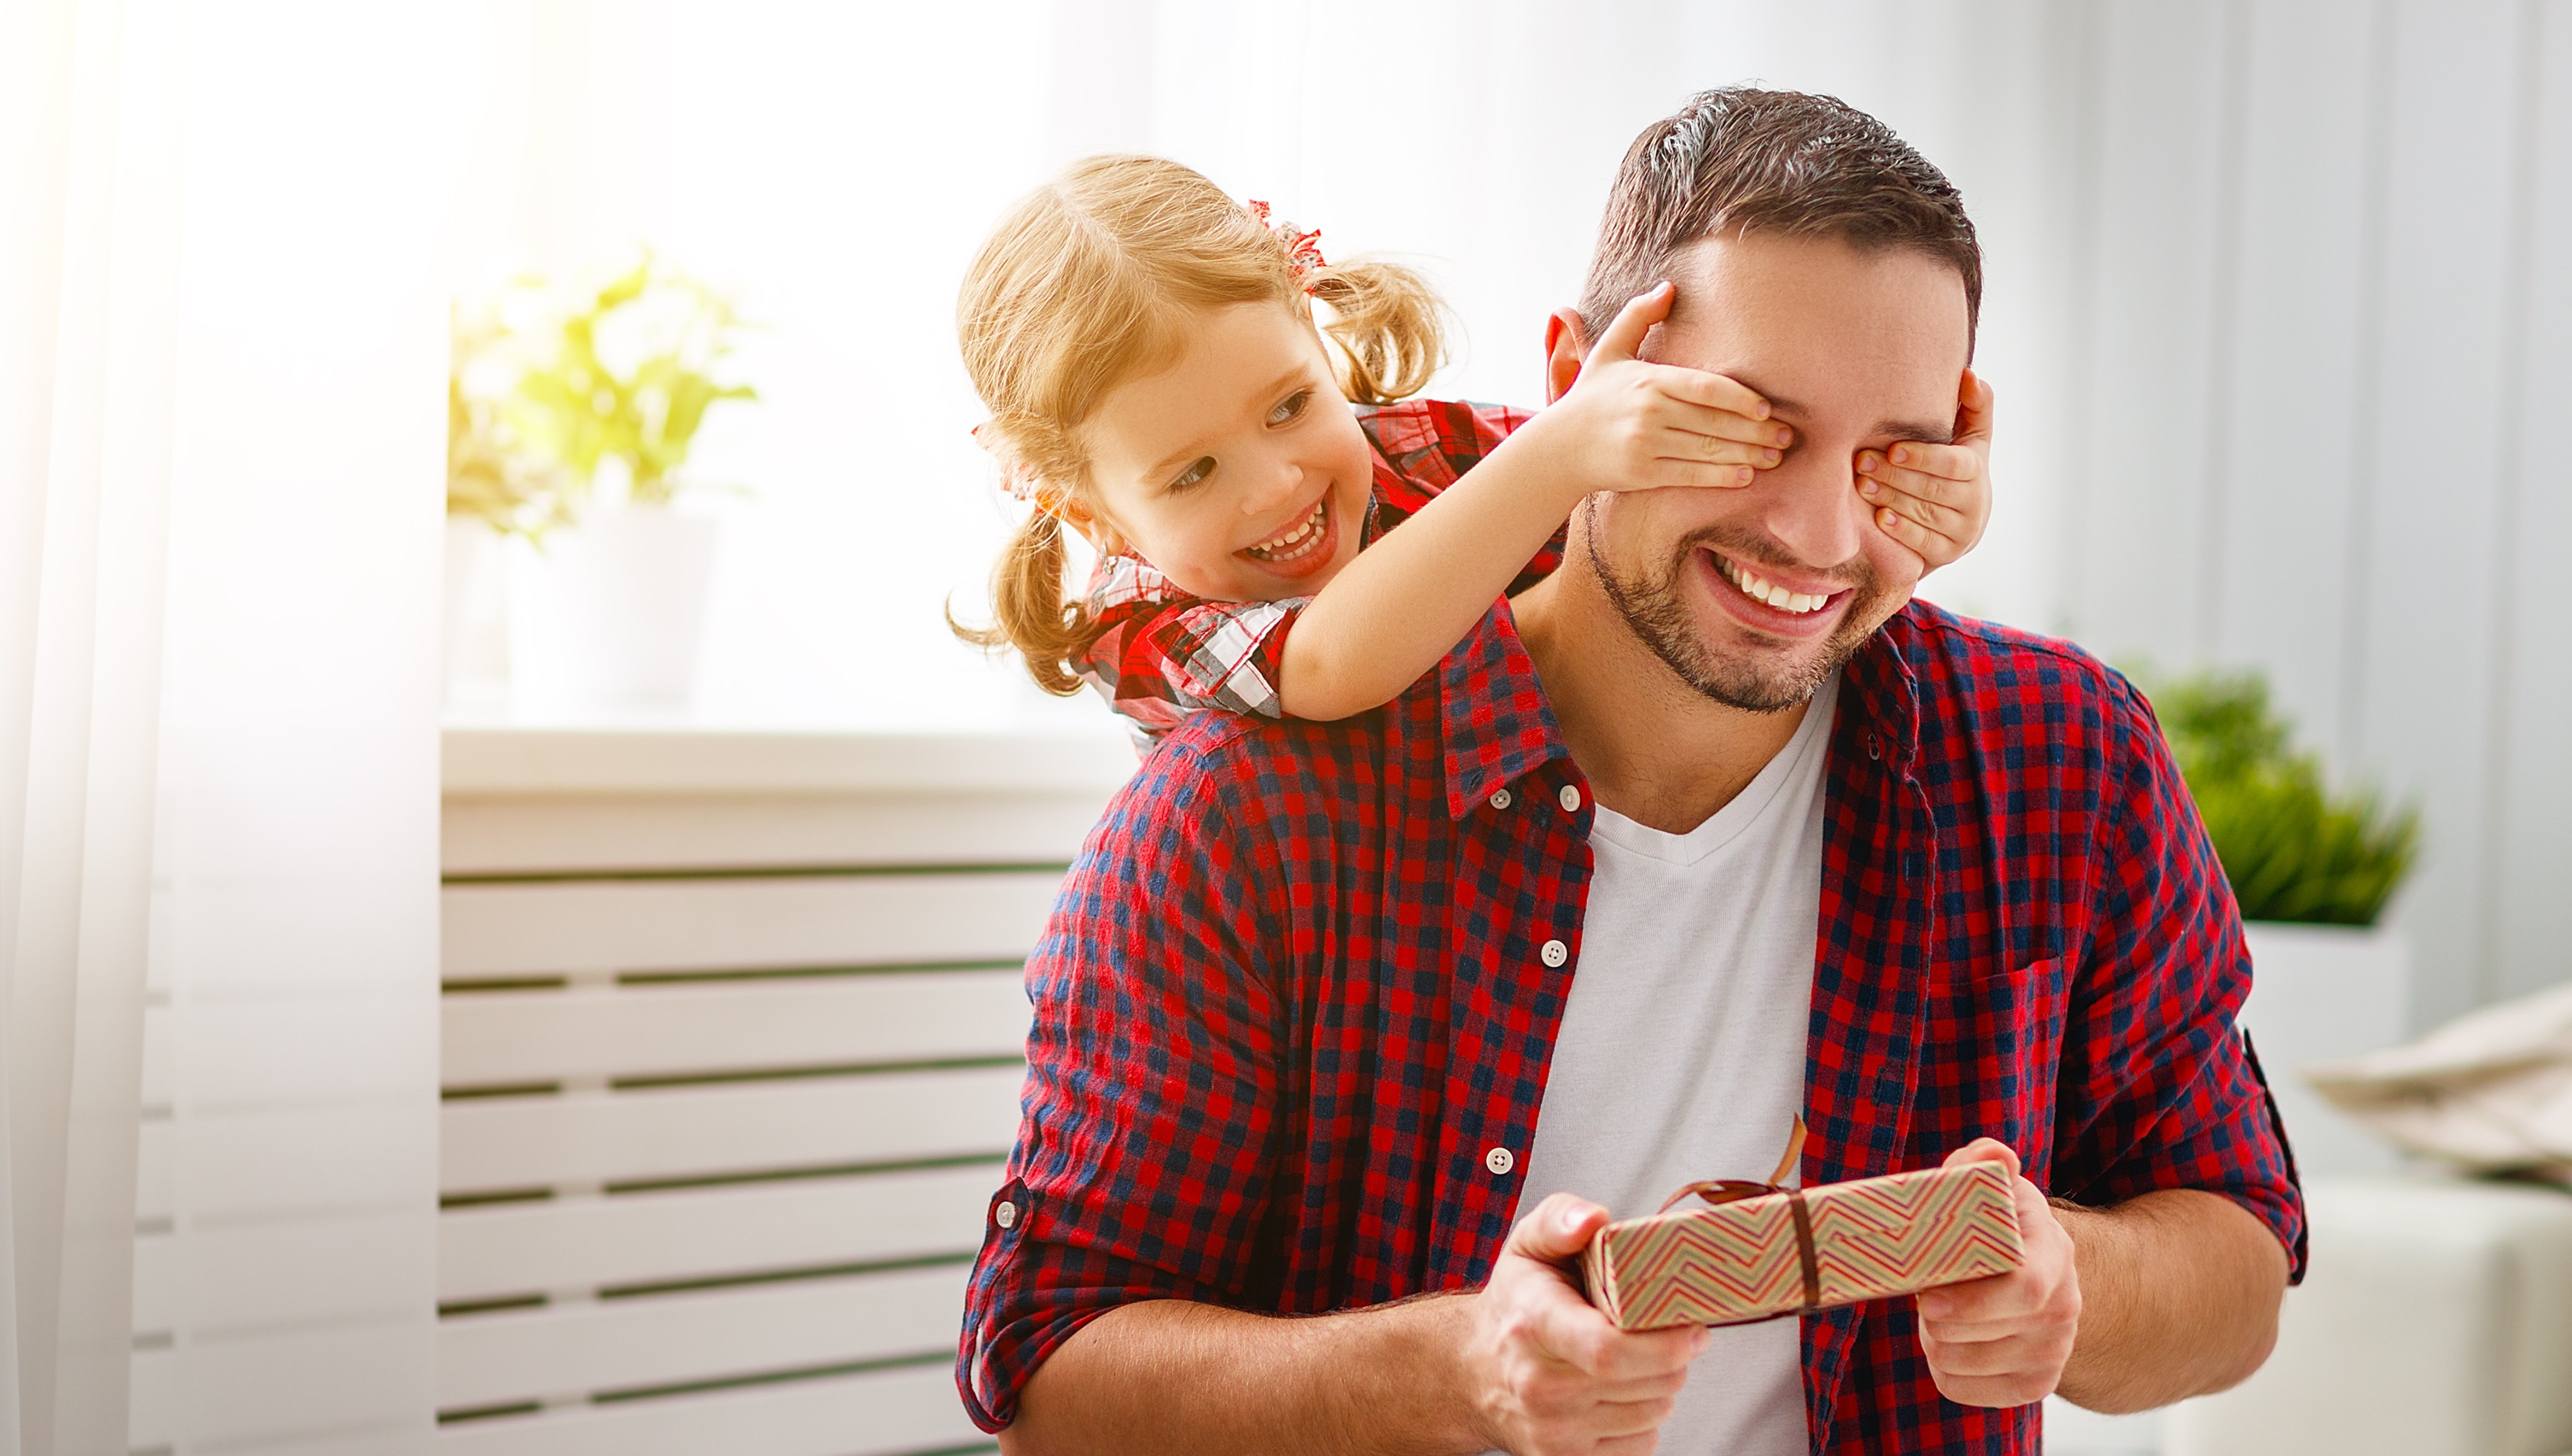 Quick & simple ideas for childrens Father's Day gifts